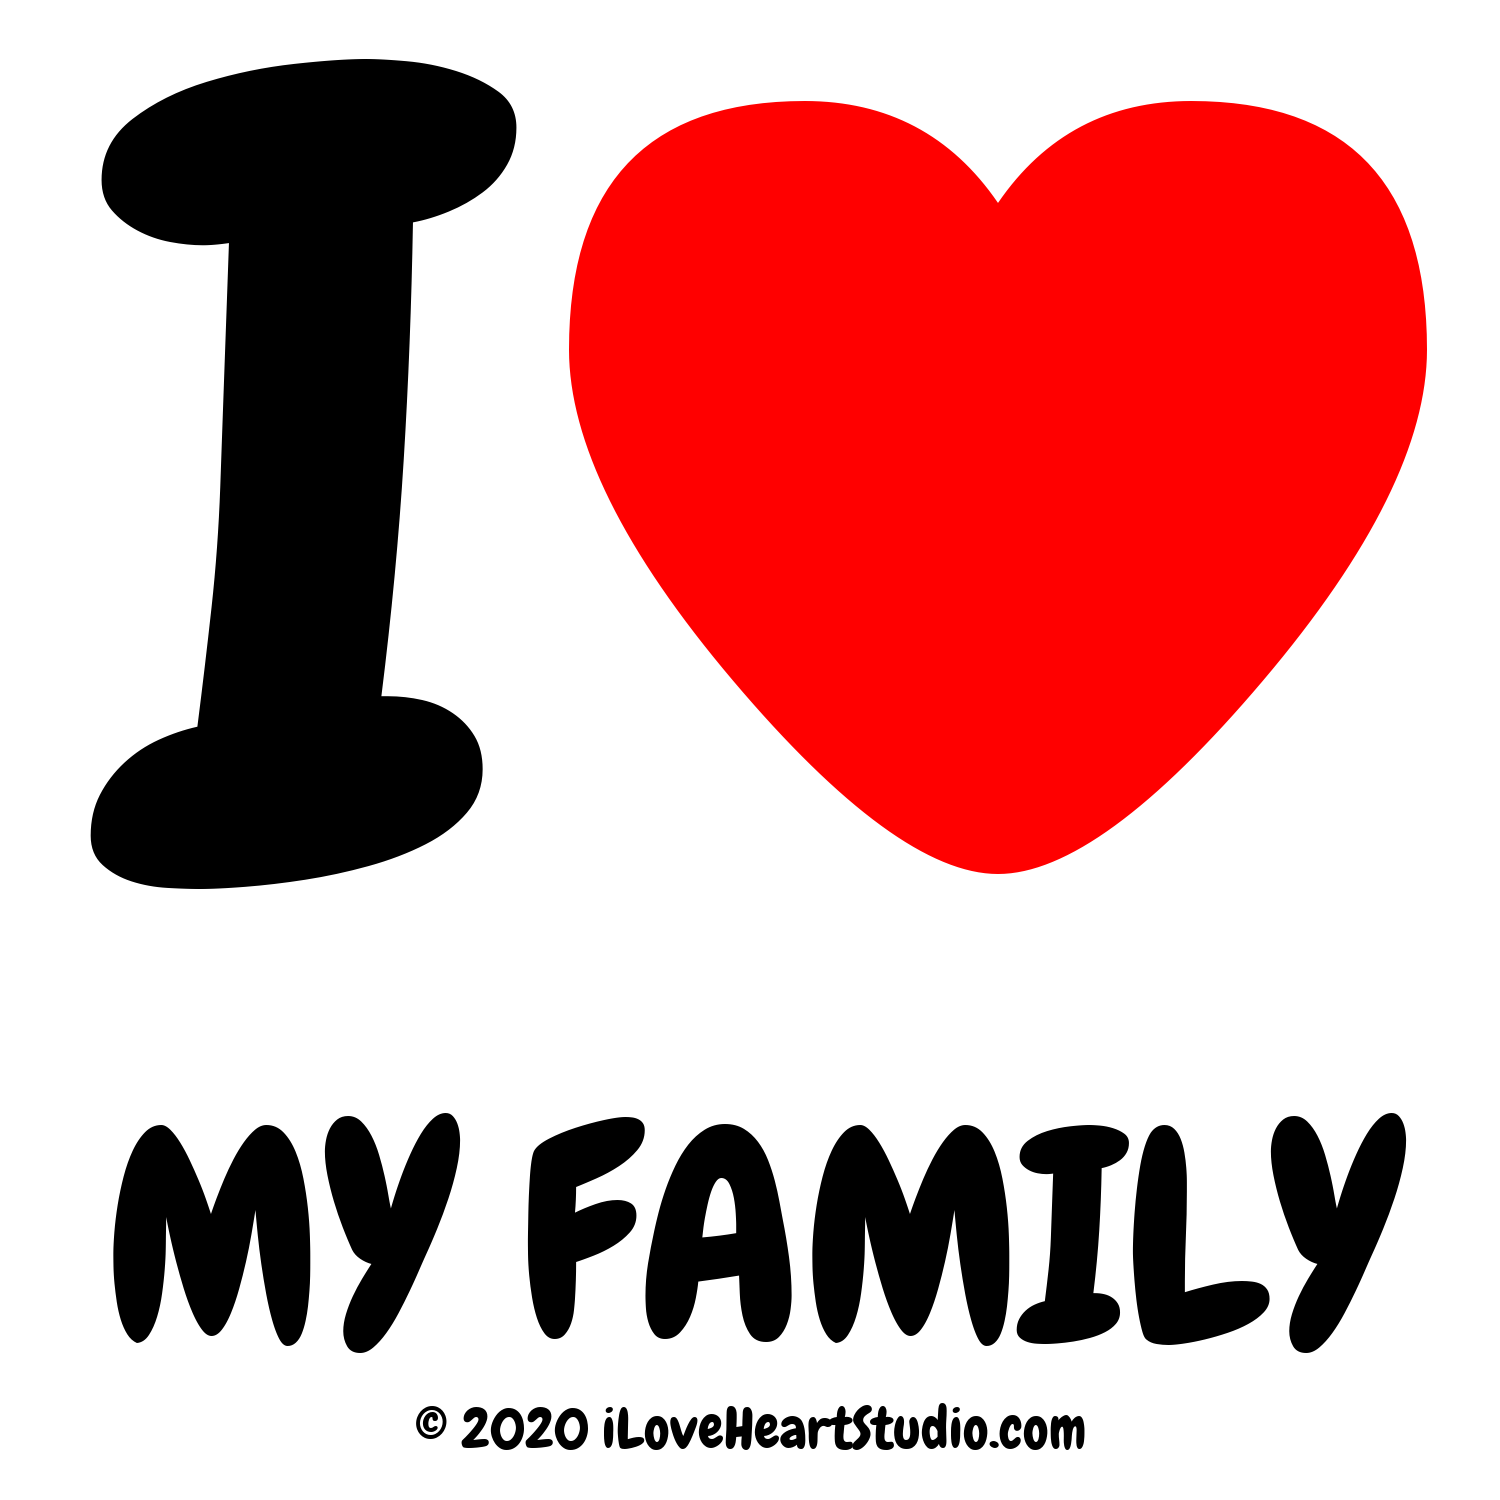 I love heart my family design on t shirt poster mug and many i love heart my family buycottarizona Image collections